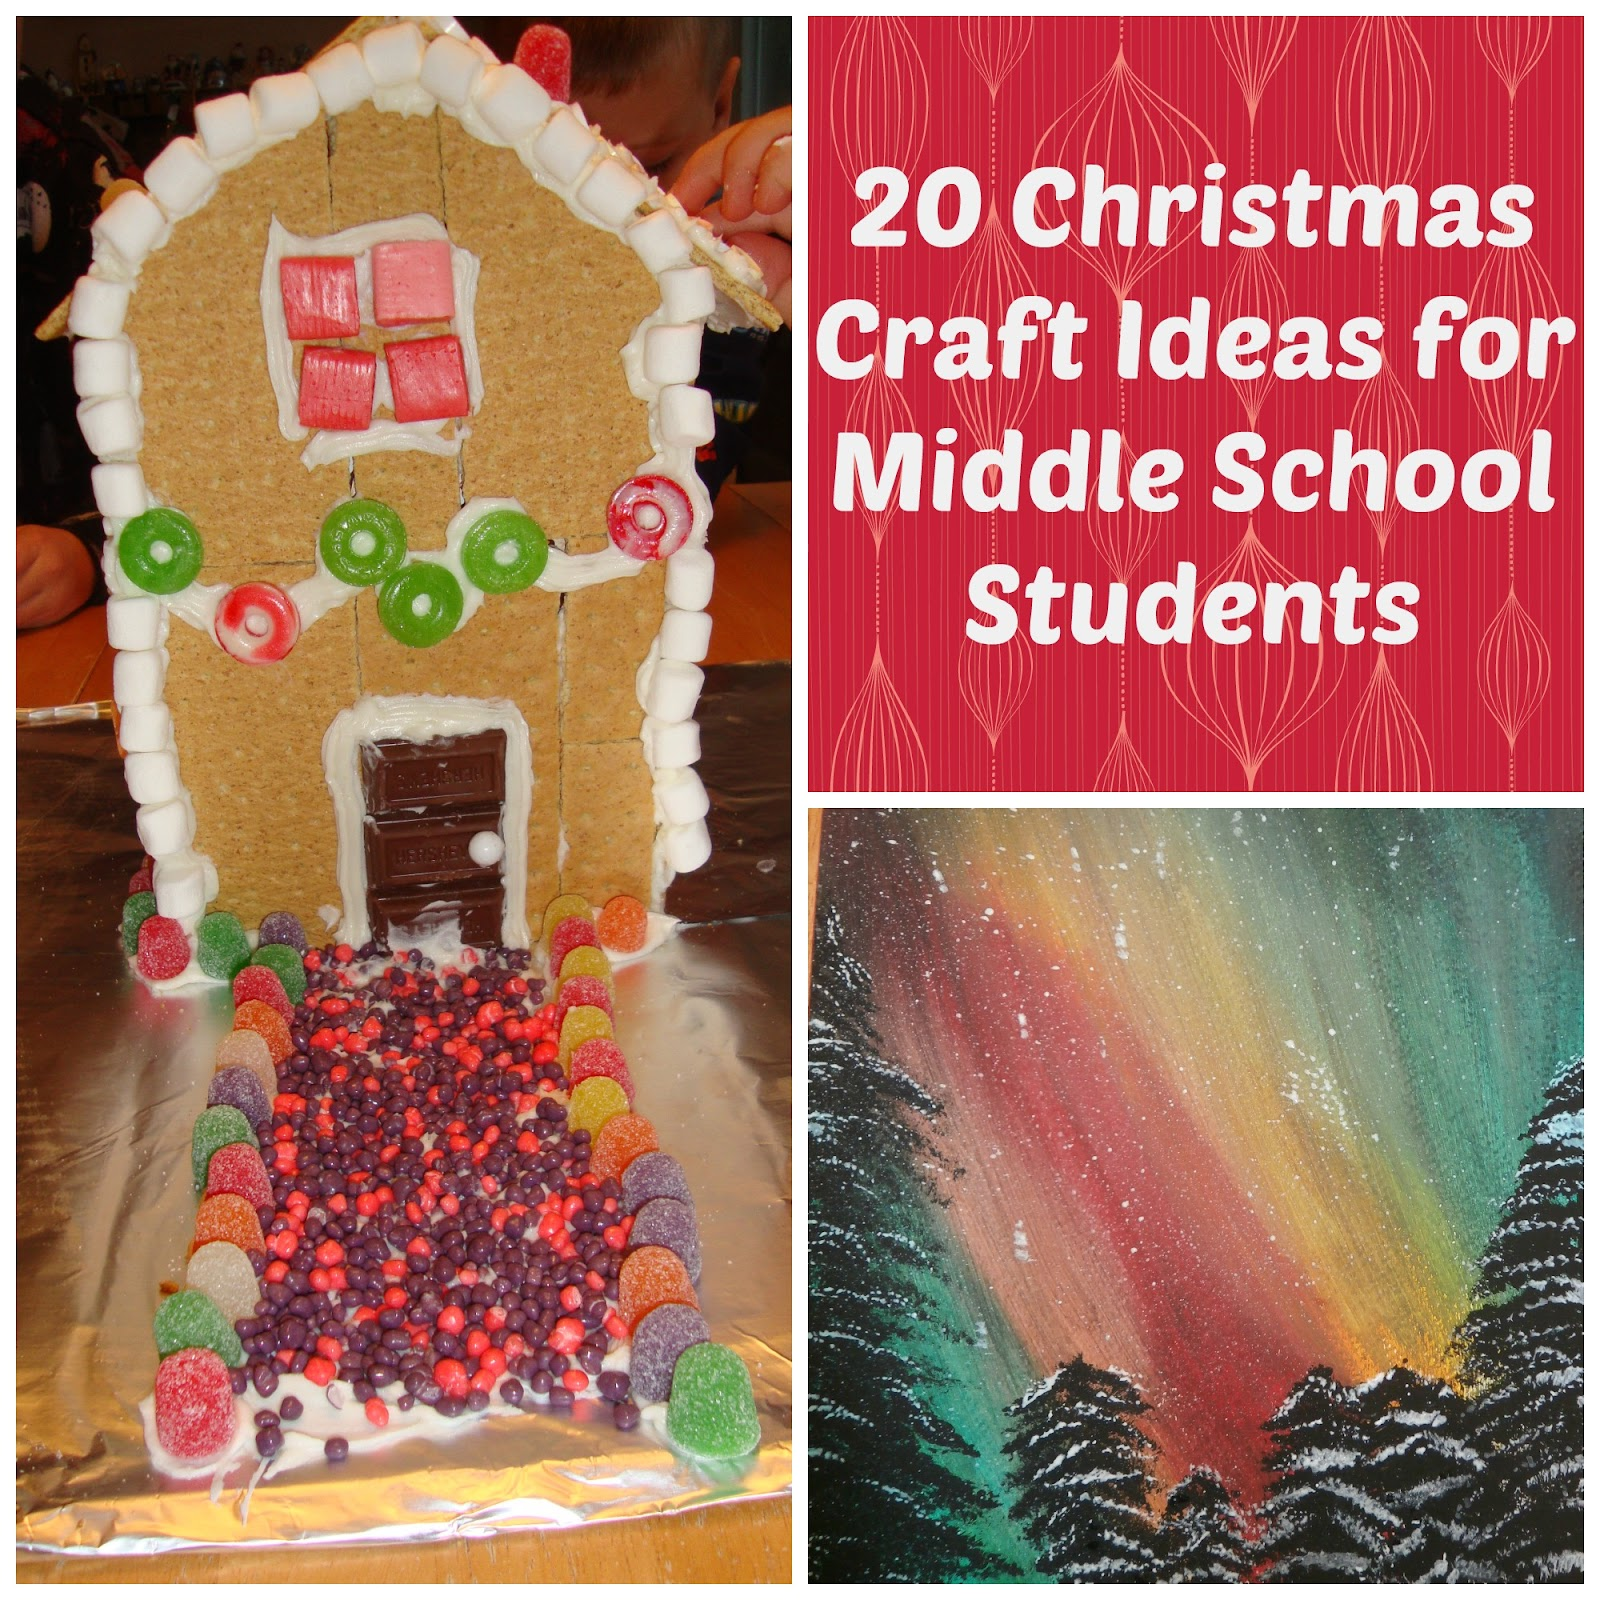 Superior School Christmas Craft Ideas Part - 5: Christmas Crafts For Middle School Students